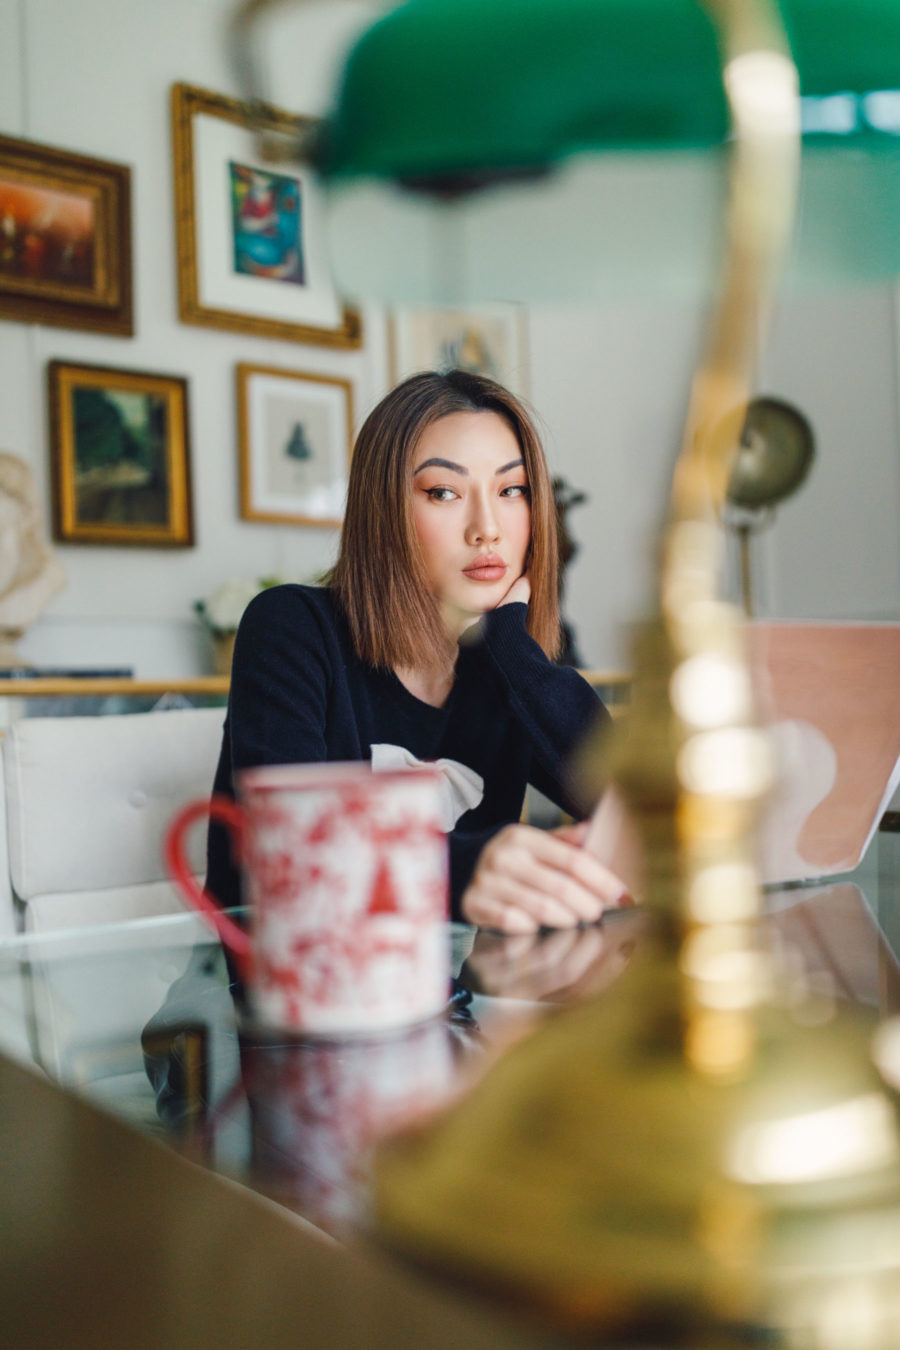 fashion blogger jessica wangs sits inside home office and shares favorite amazon buys // Jessica Wang - Notjessfashion.com